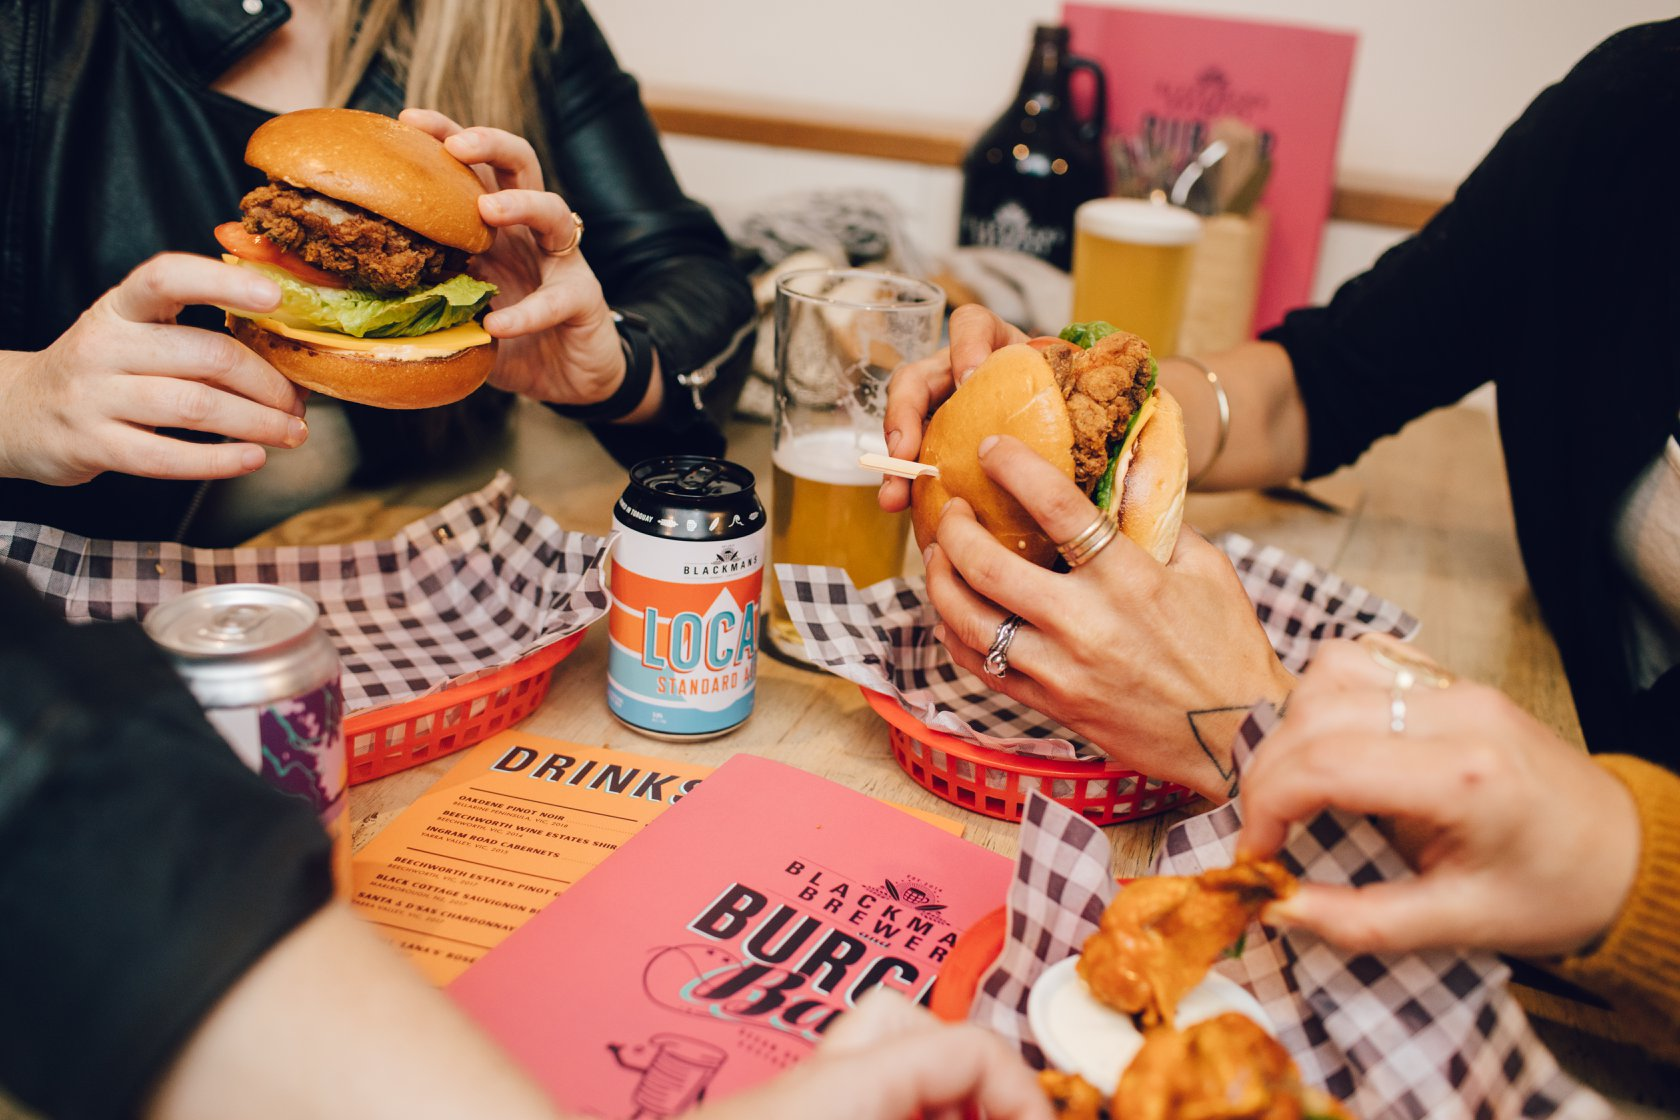 Get On The Beers With These Epic Burger And Bottomless Beer Sunday Sessions